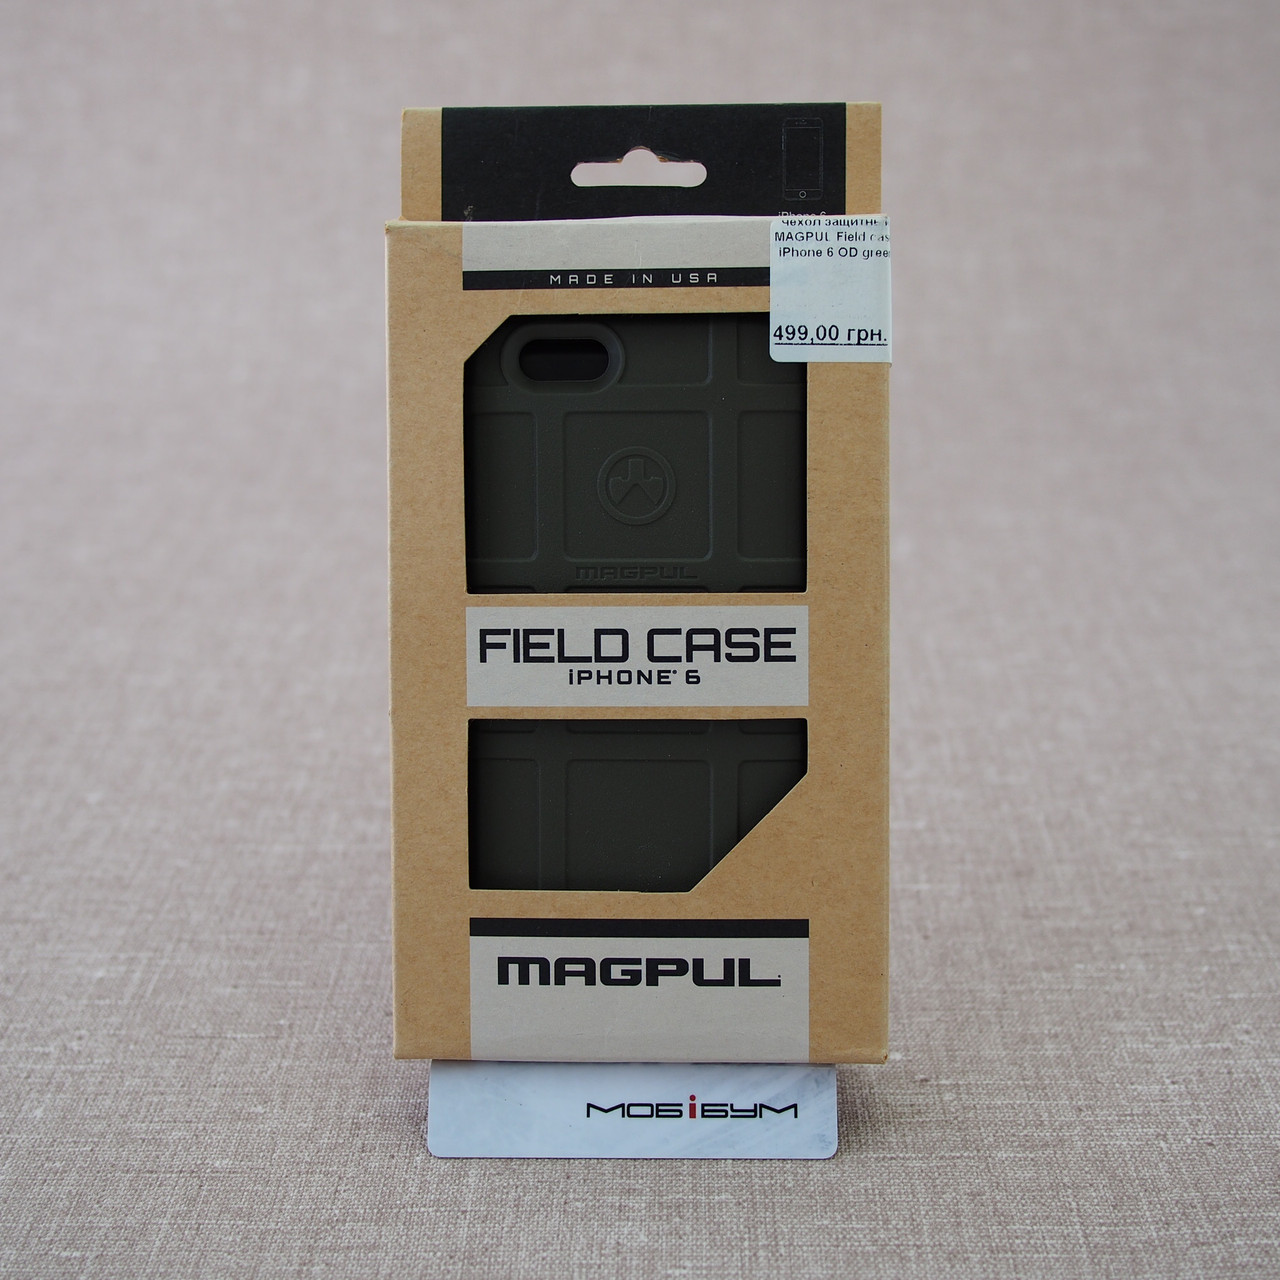 Чехол защитный MAGPUL Field case iPhone 6 OD green (MAG484-ODG) EAN/UPC: 840815100072